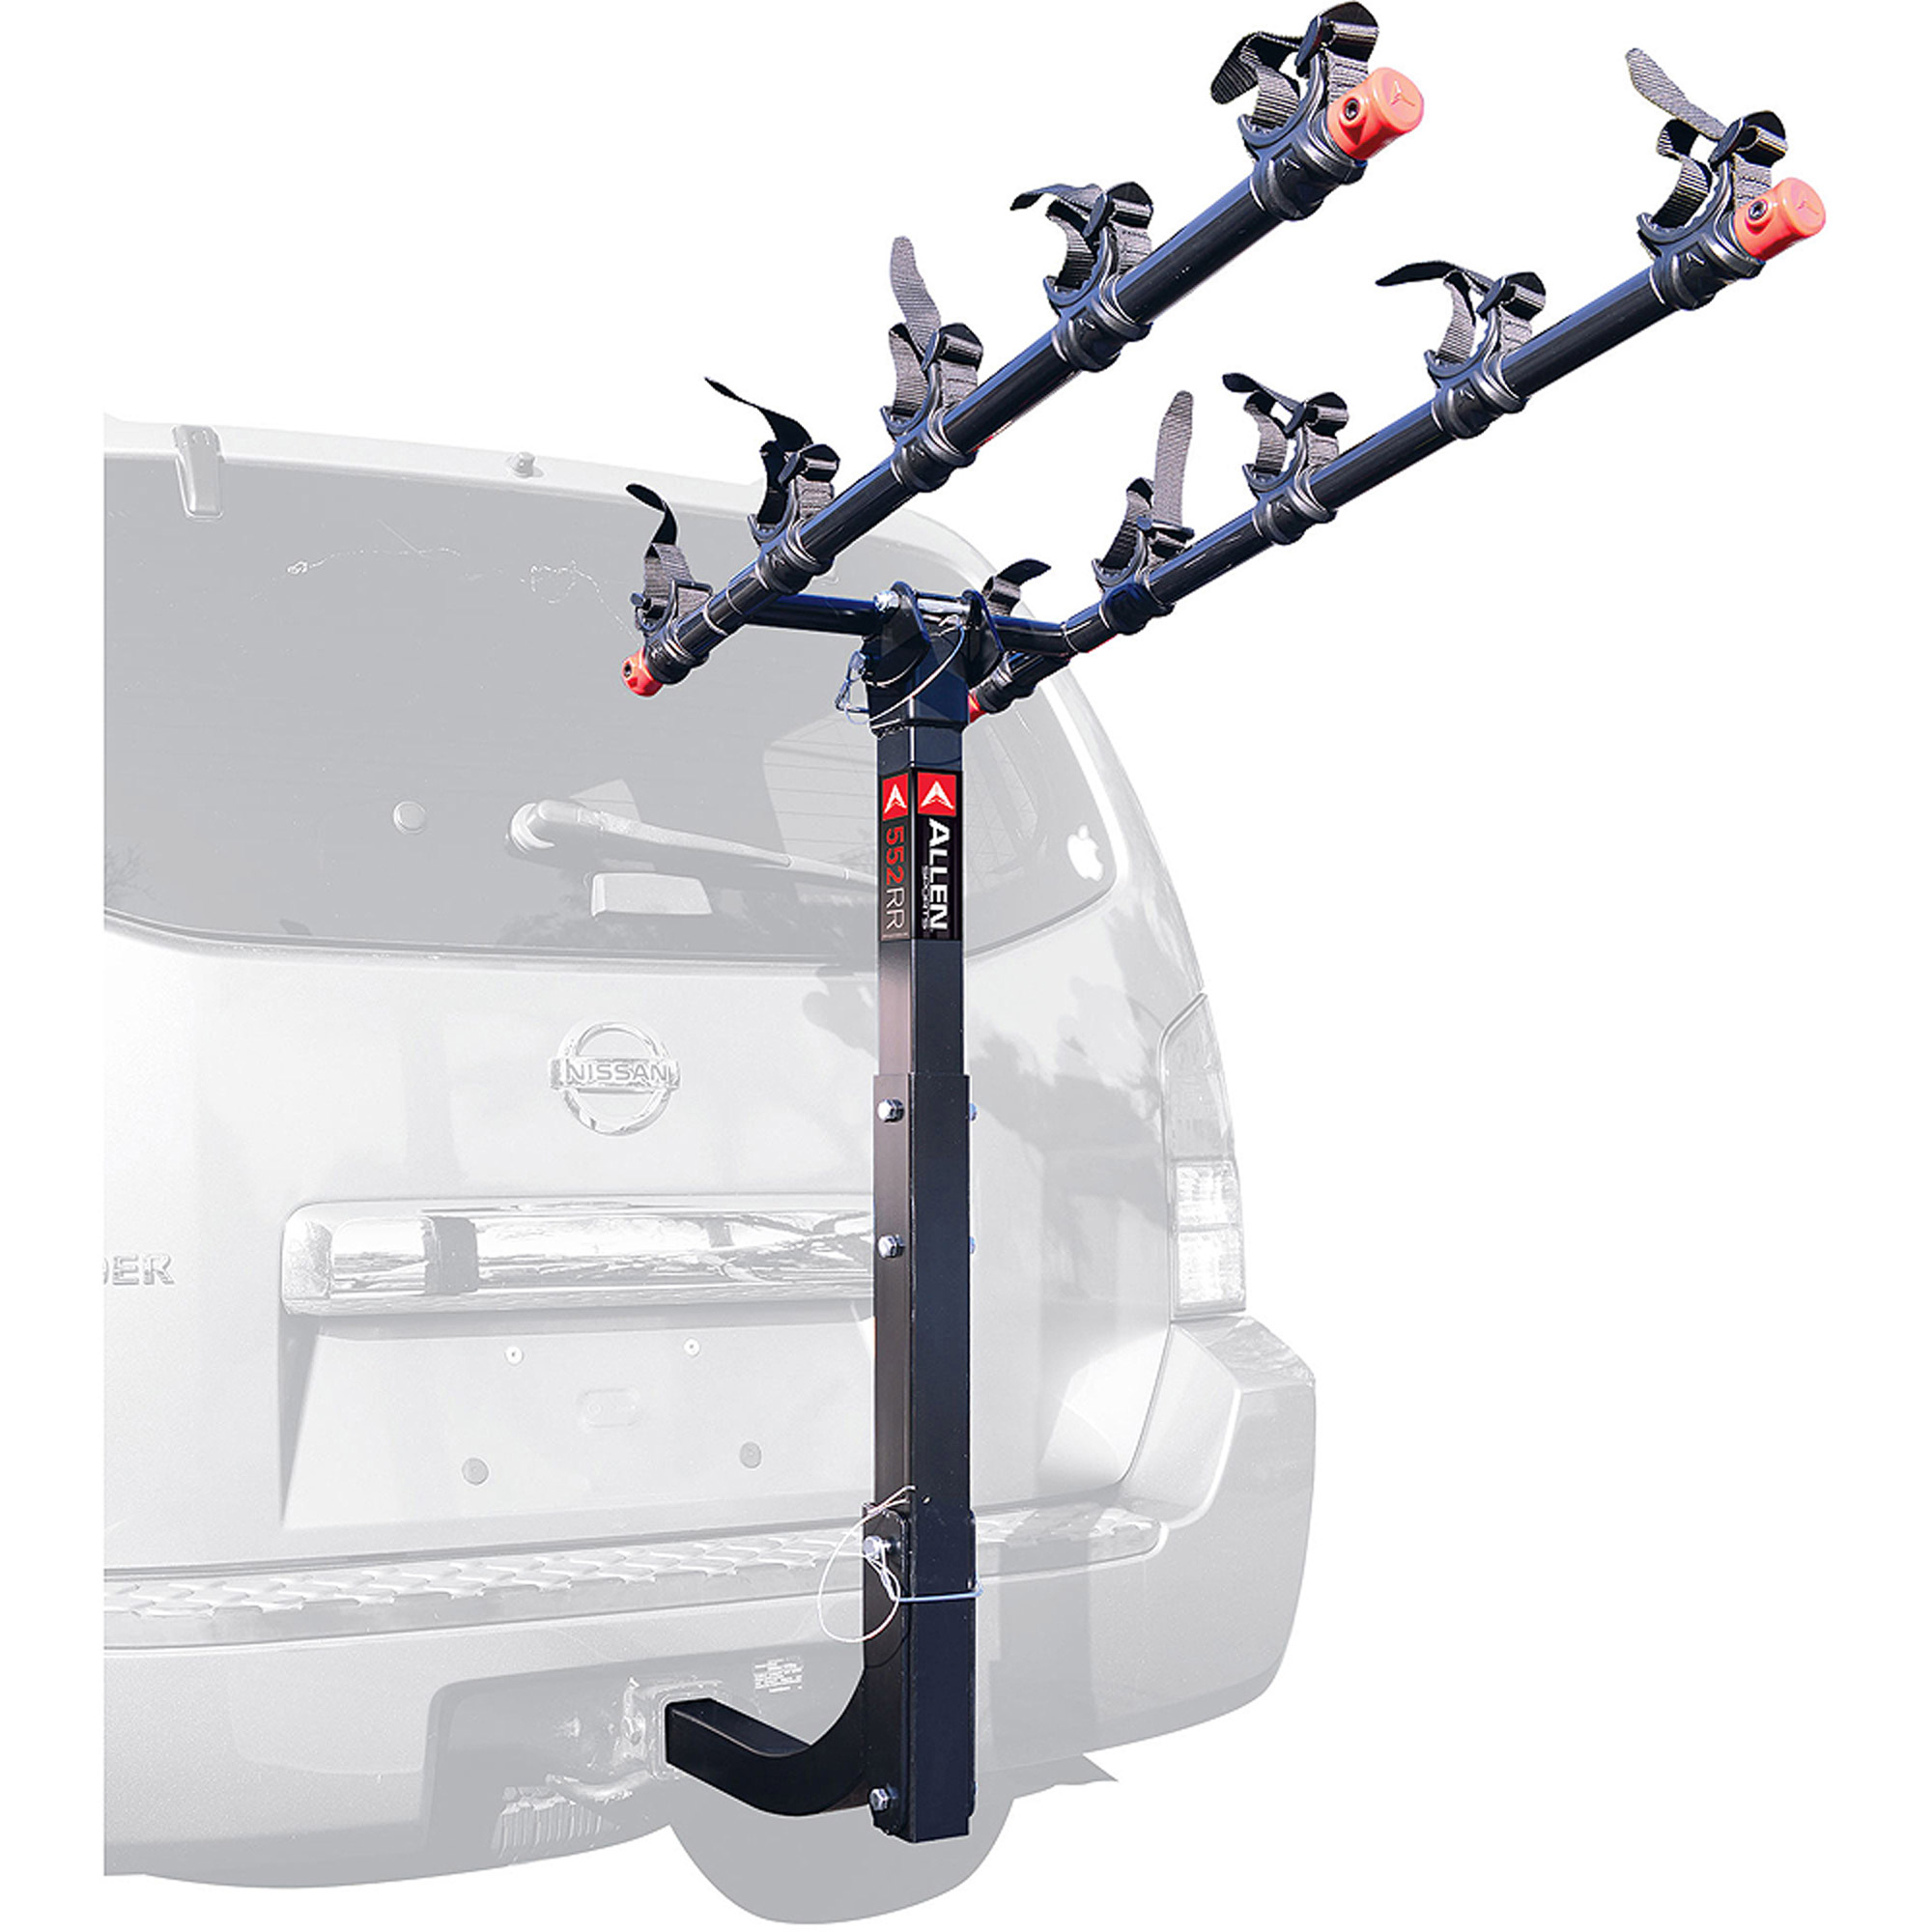 Allen Sports 552RR Deluxe 5-Bike Hitch Mounted Bike Rack